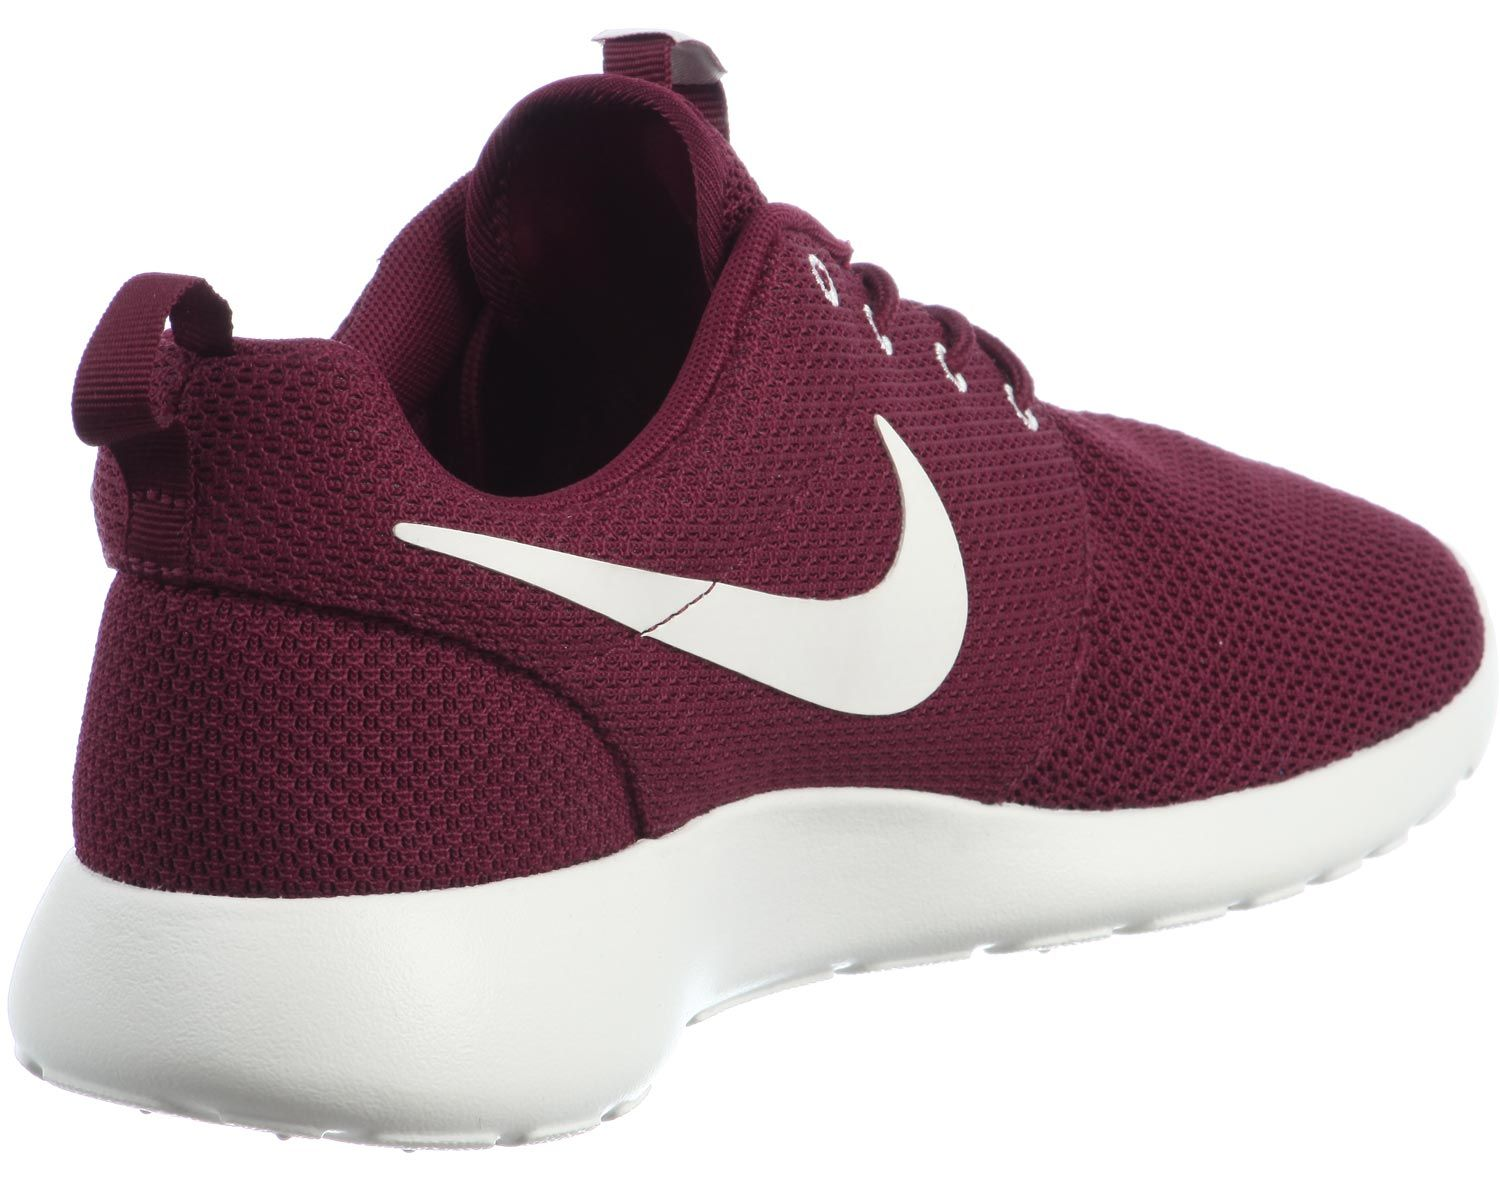 nike roshe run uomo bordeaux